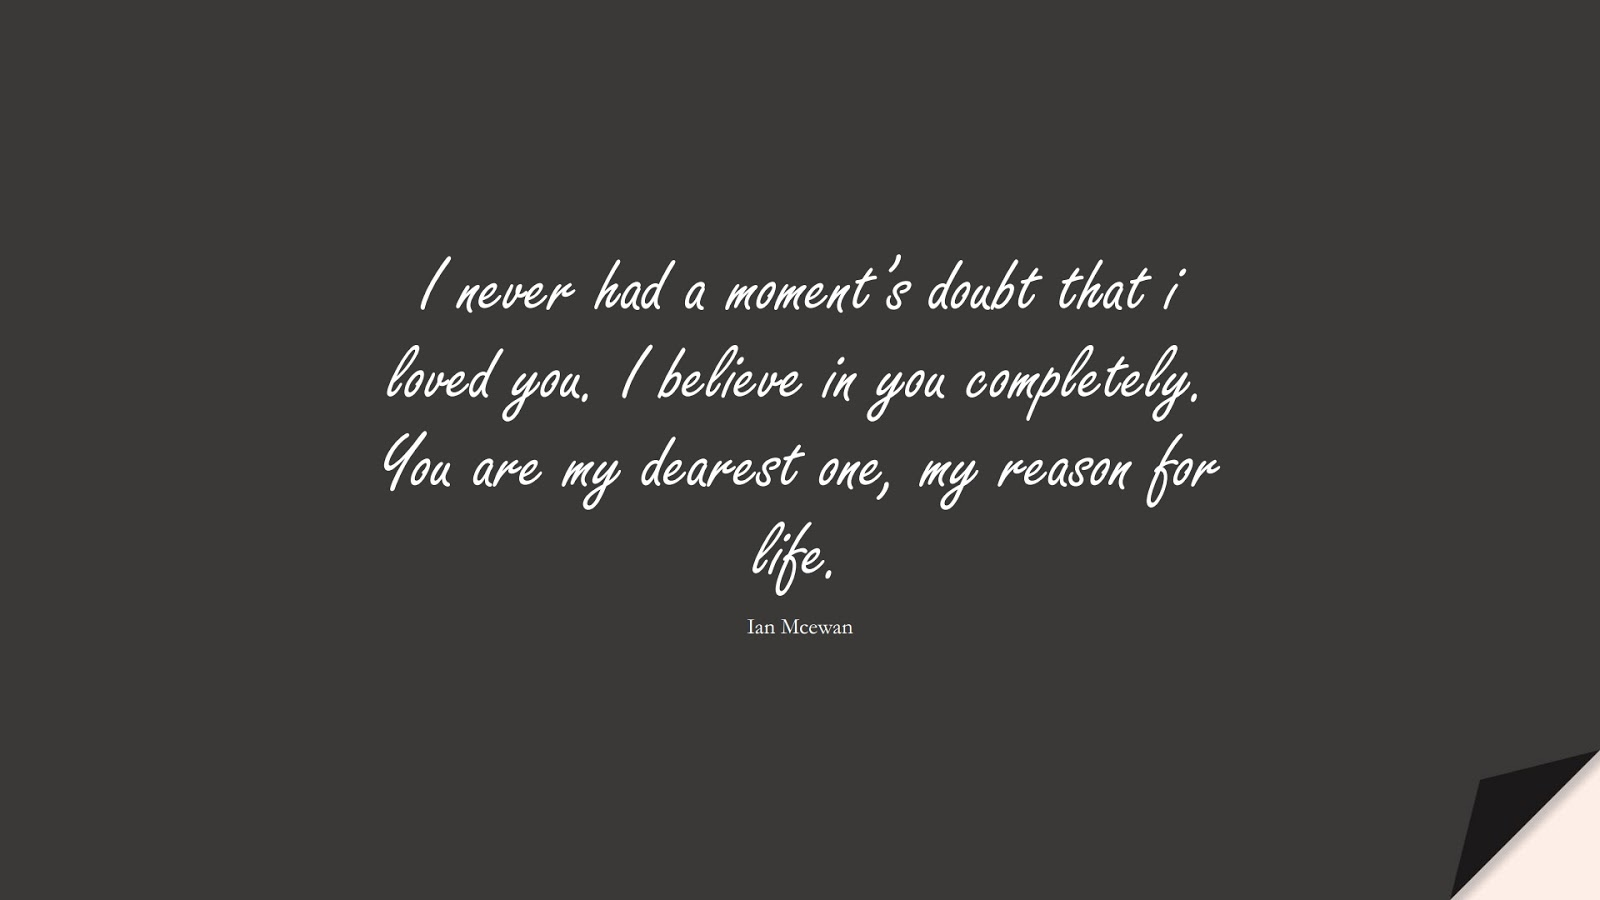 I never had a moment's doubt that i loved you. I believe in you completely. You are my dearest one, my reason for life. (Ian Mcewan);  #LoveQuotes